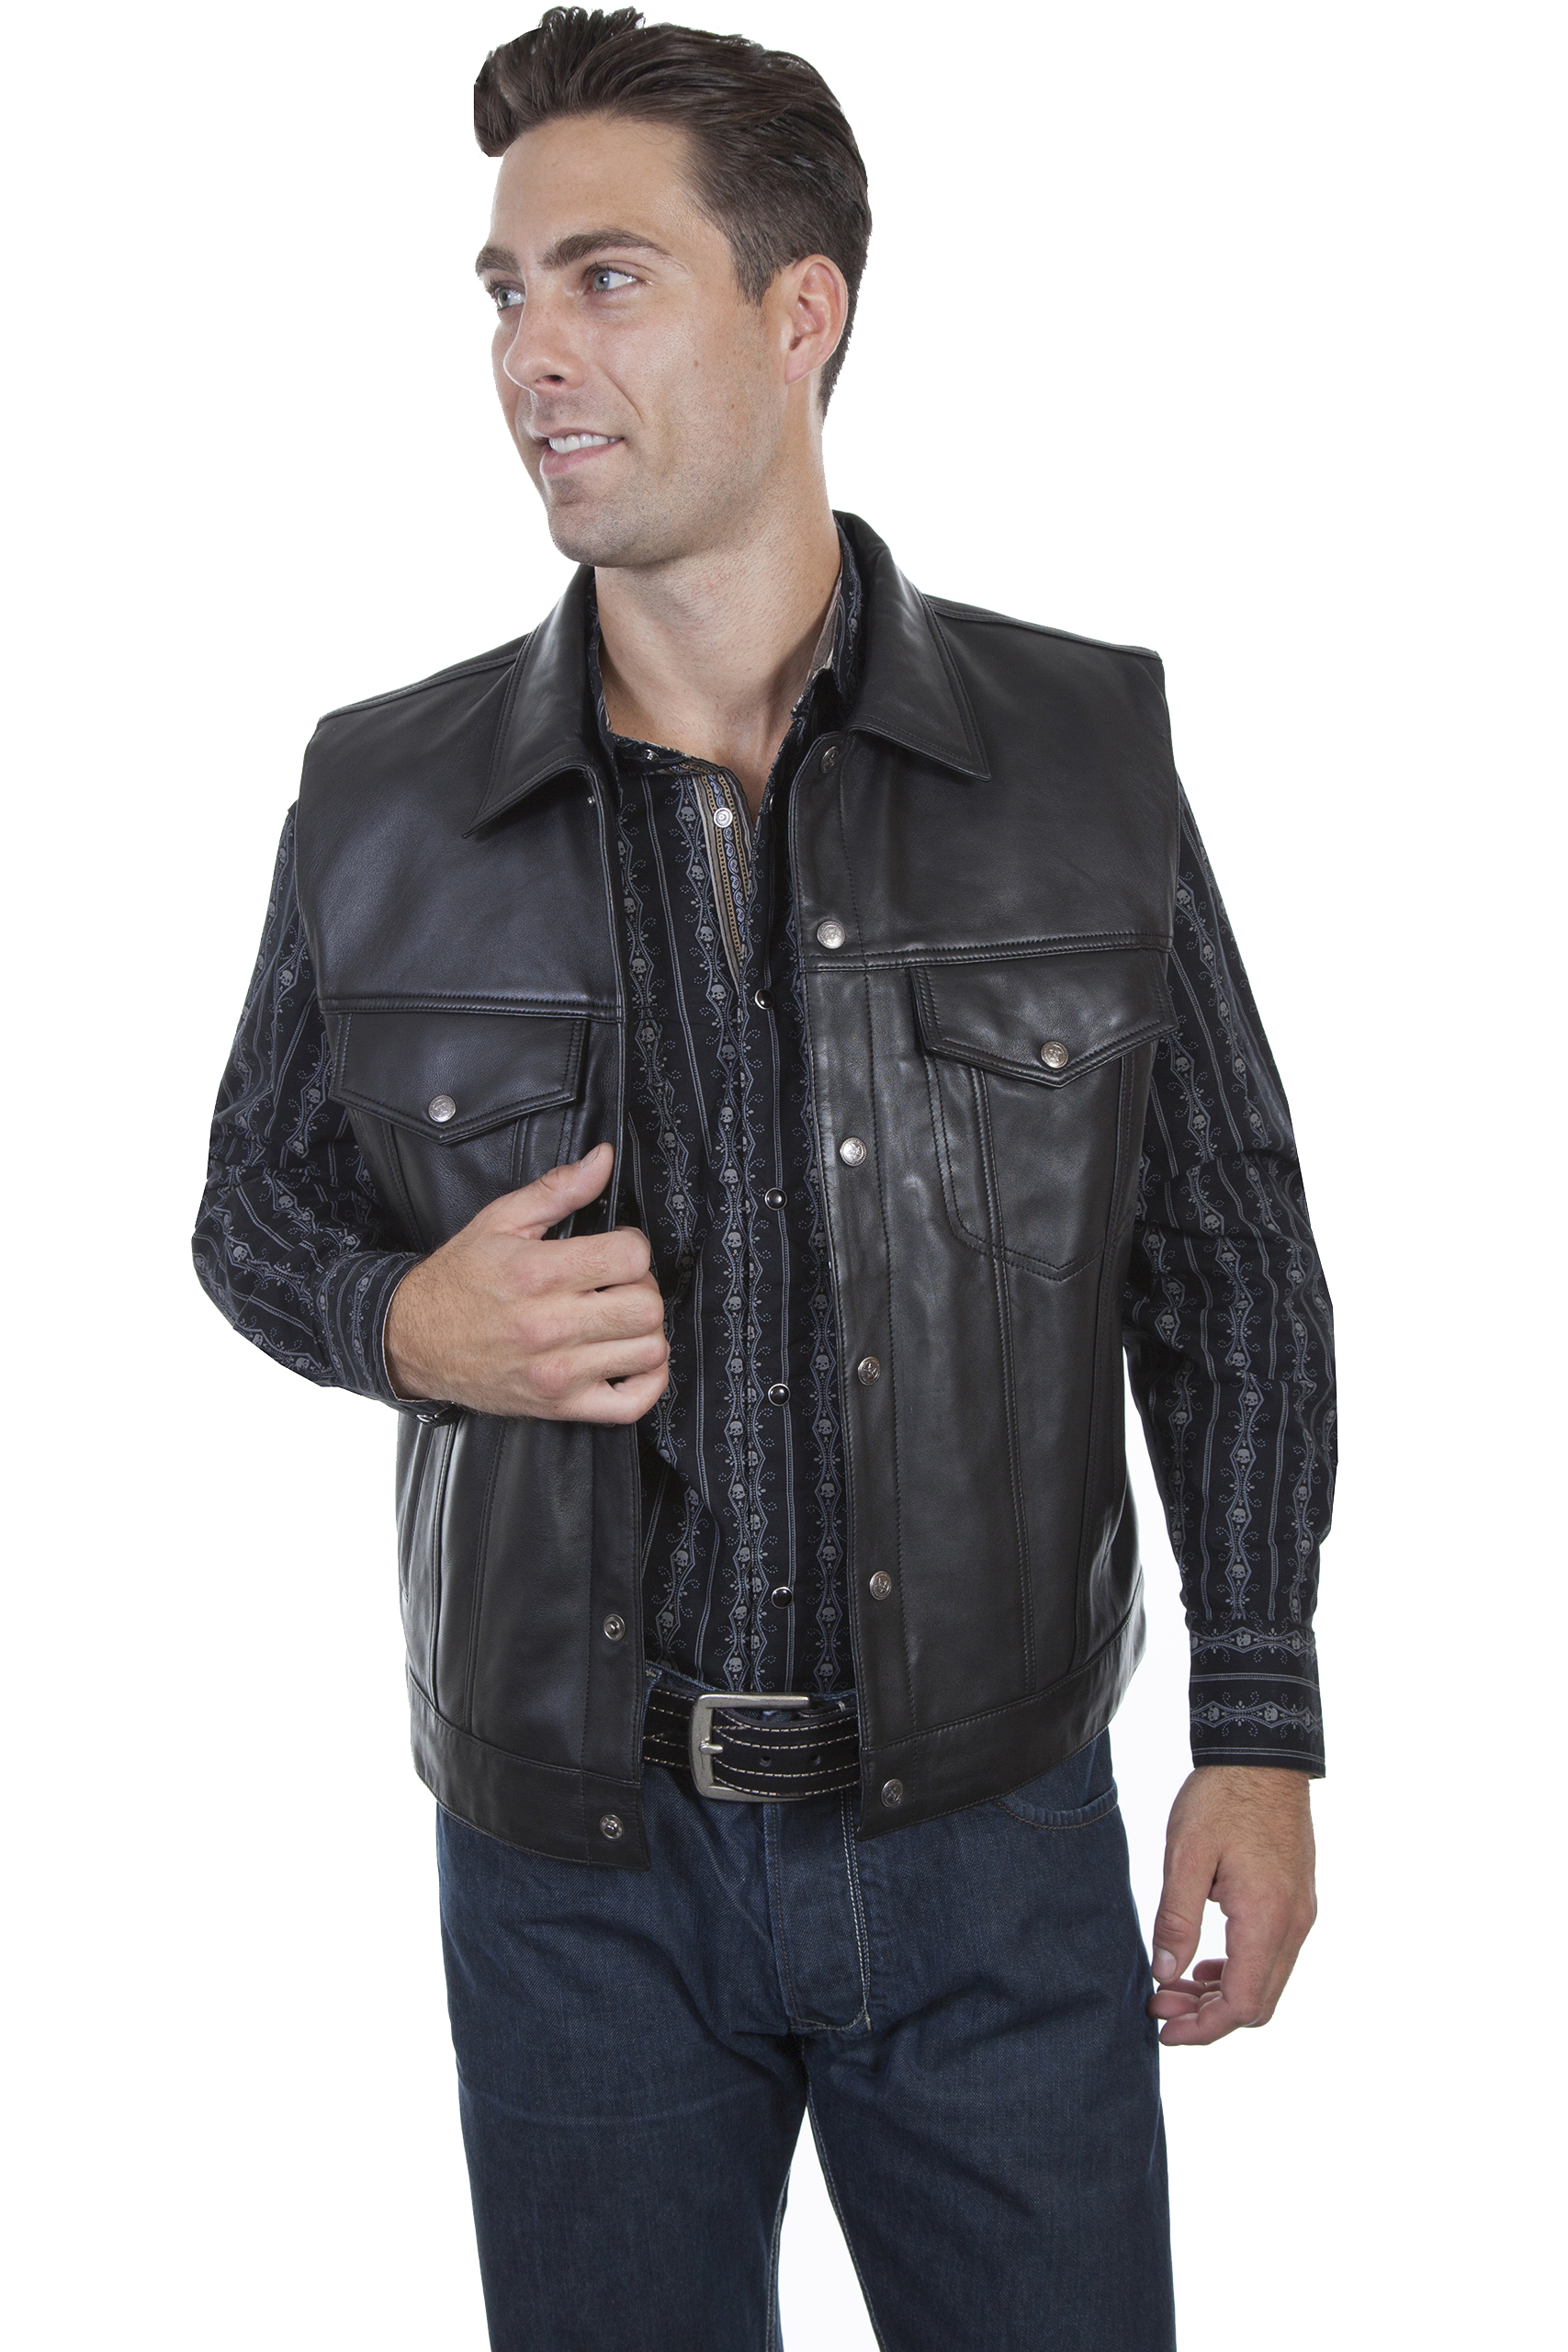 e2eb0039c Scully Leather; Western and Contemporary Clothing and Accessories